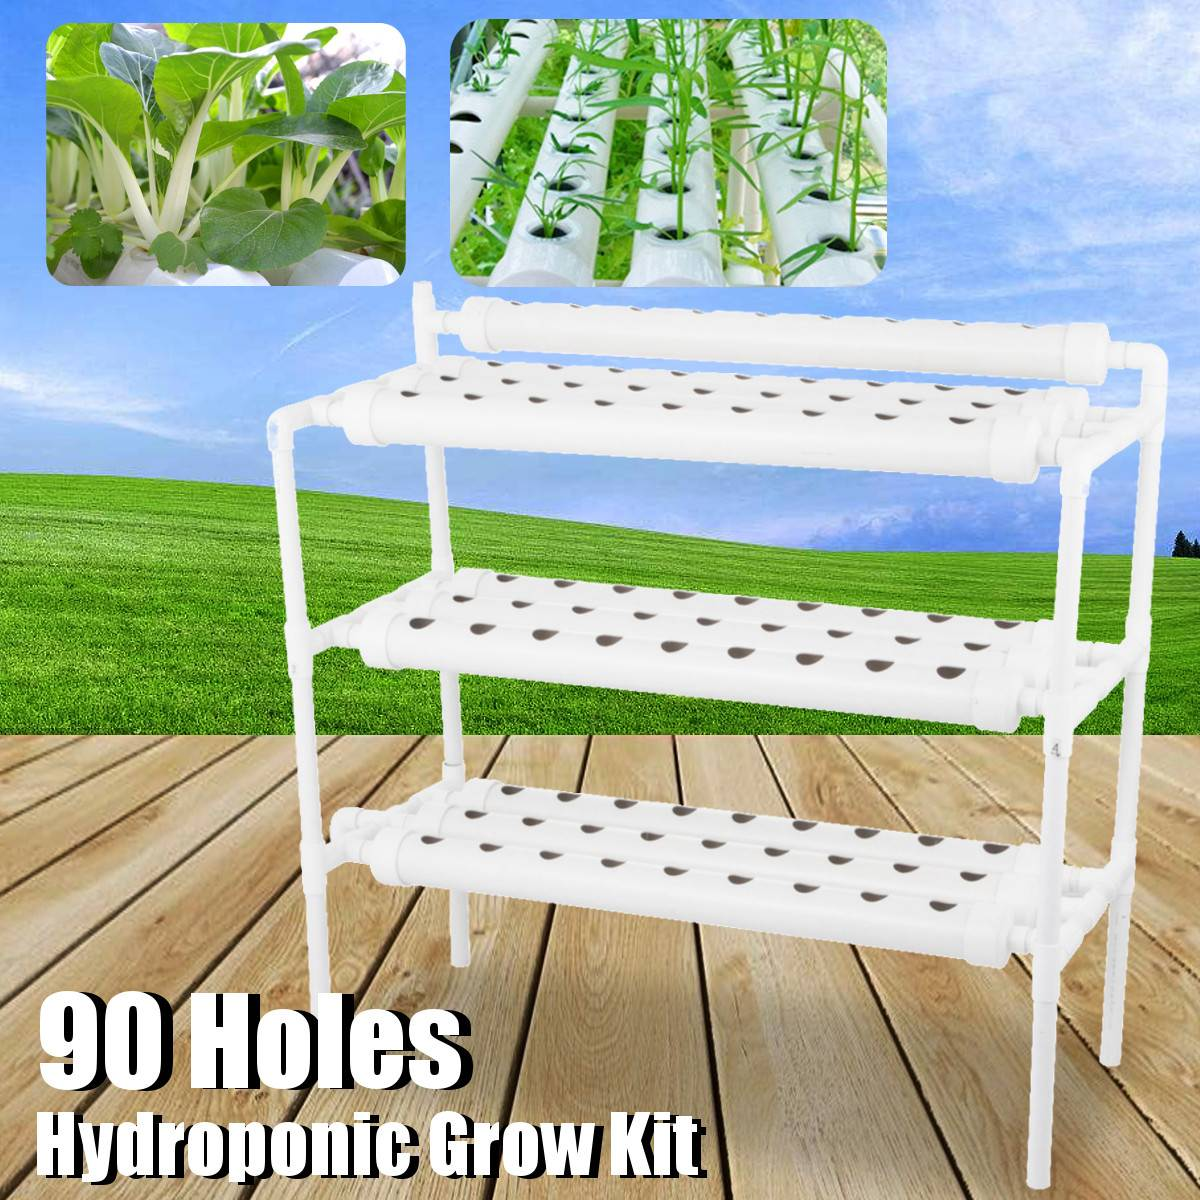 12 Types Plant Hydroponic Systems Grow Kit 108-8 Holes Nursery Pots Anti Pest Soilless Cultivation Indoor Garden Culture Planter